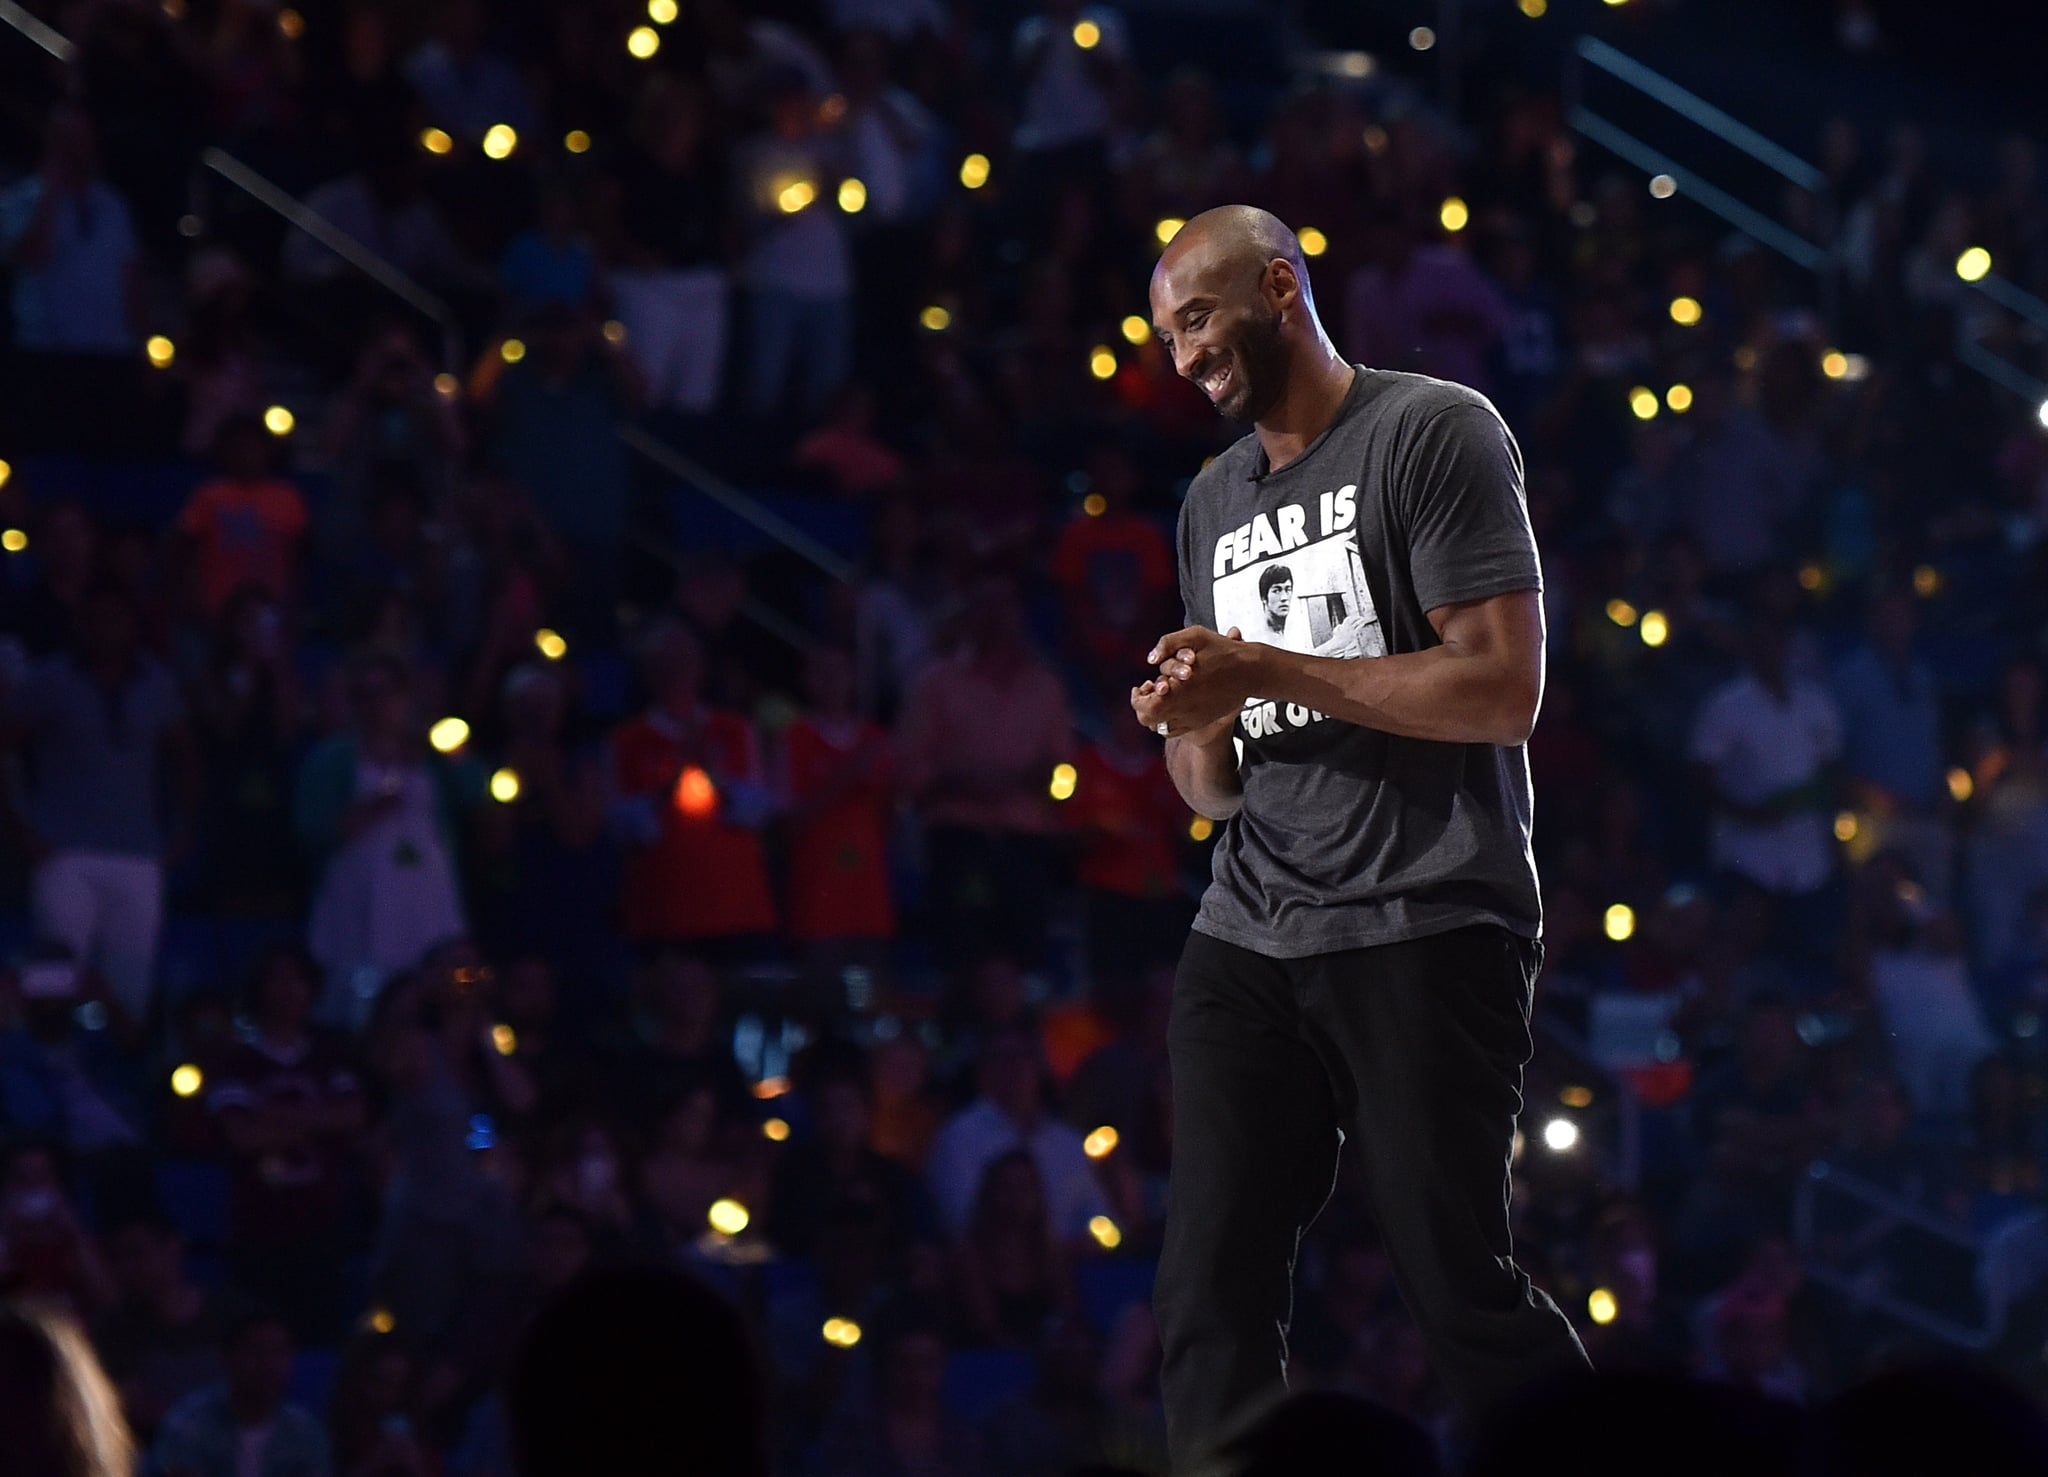 WESTWOOD, CA - JULY 14:  Honouree Kobe Bryant accepts the Legend award onstage during the Nickelodeon Kids' Choice Sports Awards 2016 at UCLA's Pauley Pavilion on July 14, 2016 in Westwood, California. The Nickelodeon Kids' Choice Sports Awards 2016 show airs on July 17, 2016 at 8pm on Nickelodeon.  (Photo by Mike Windle/KCSports2016/Getty Images for Nickelodeon)